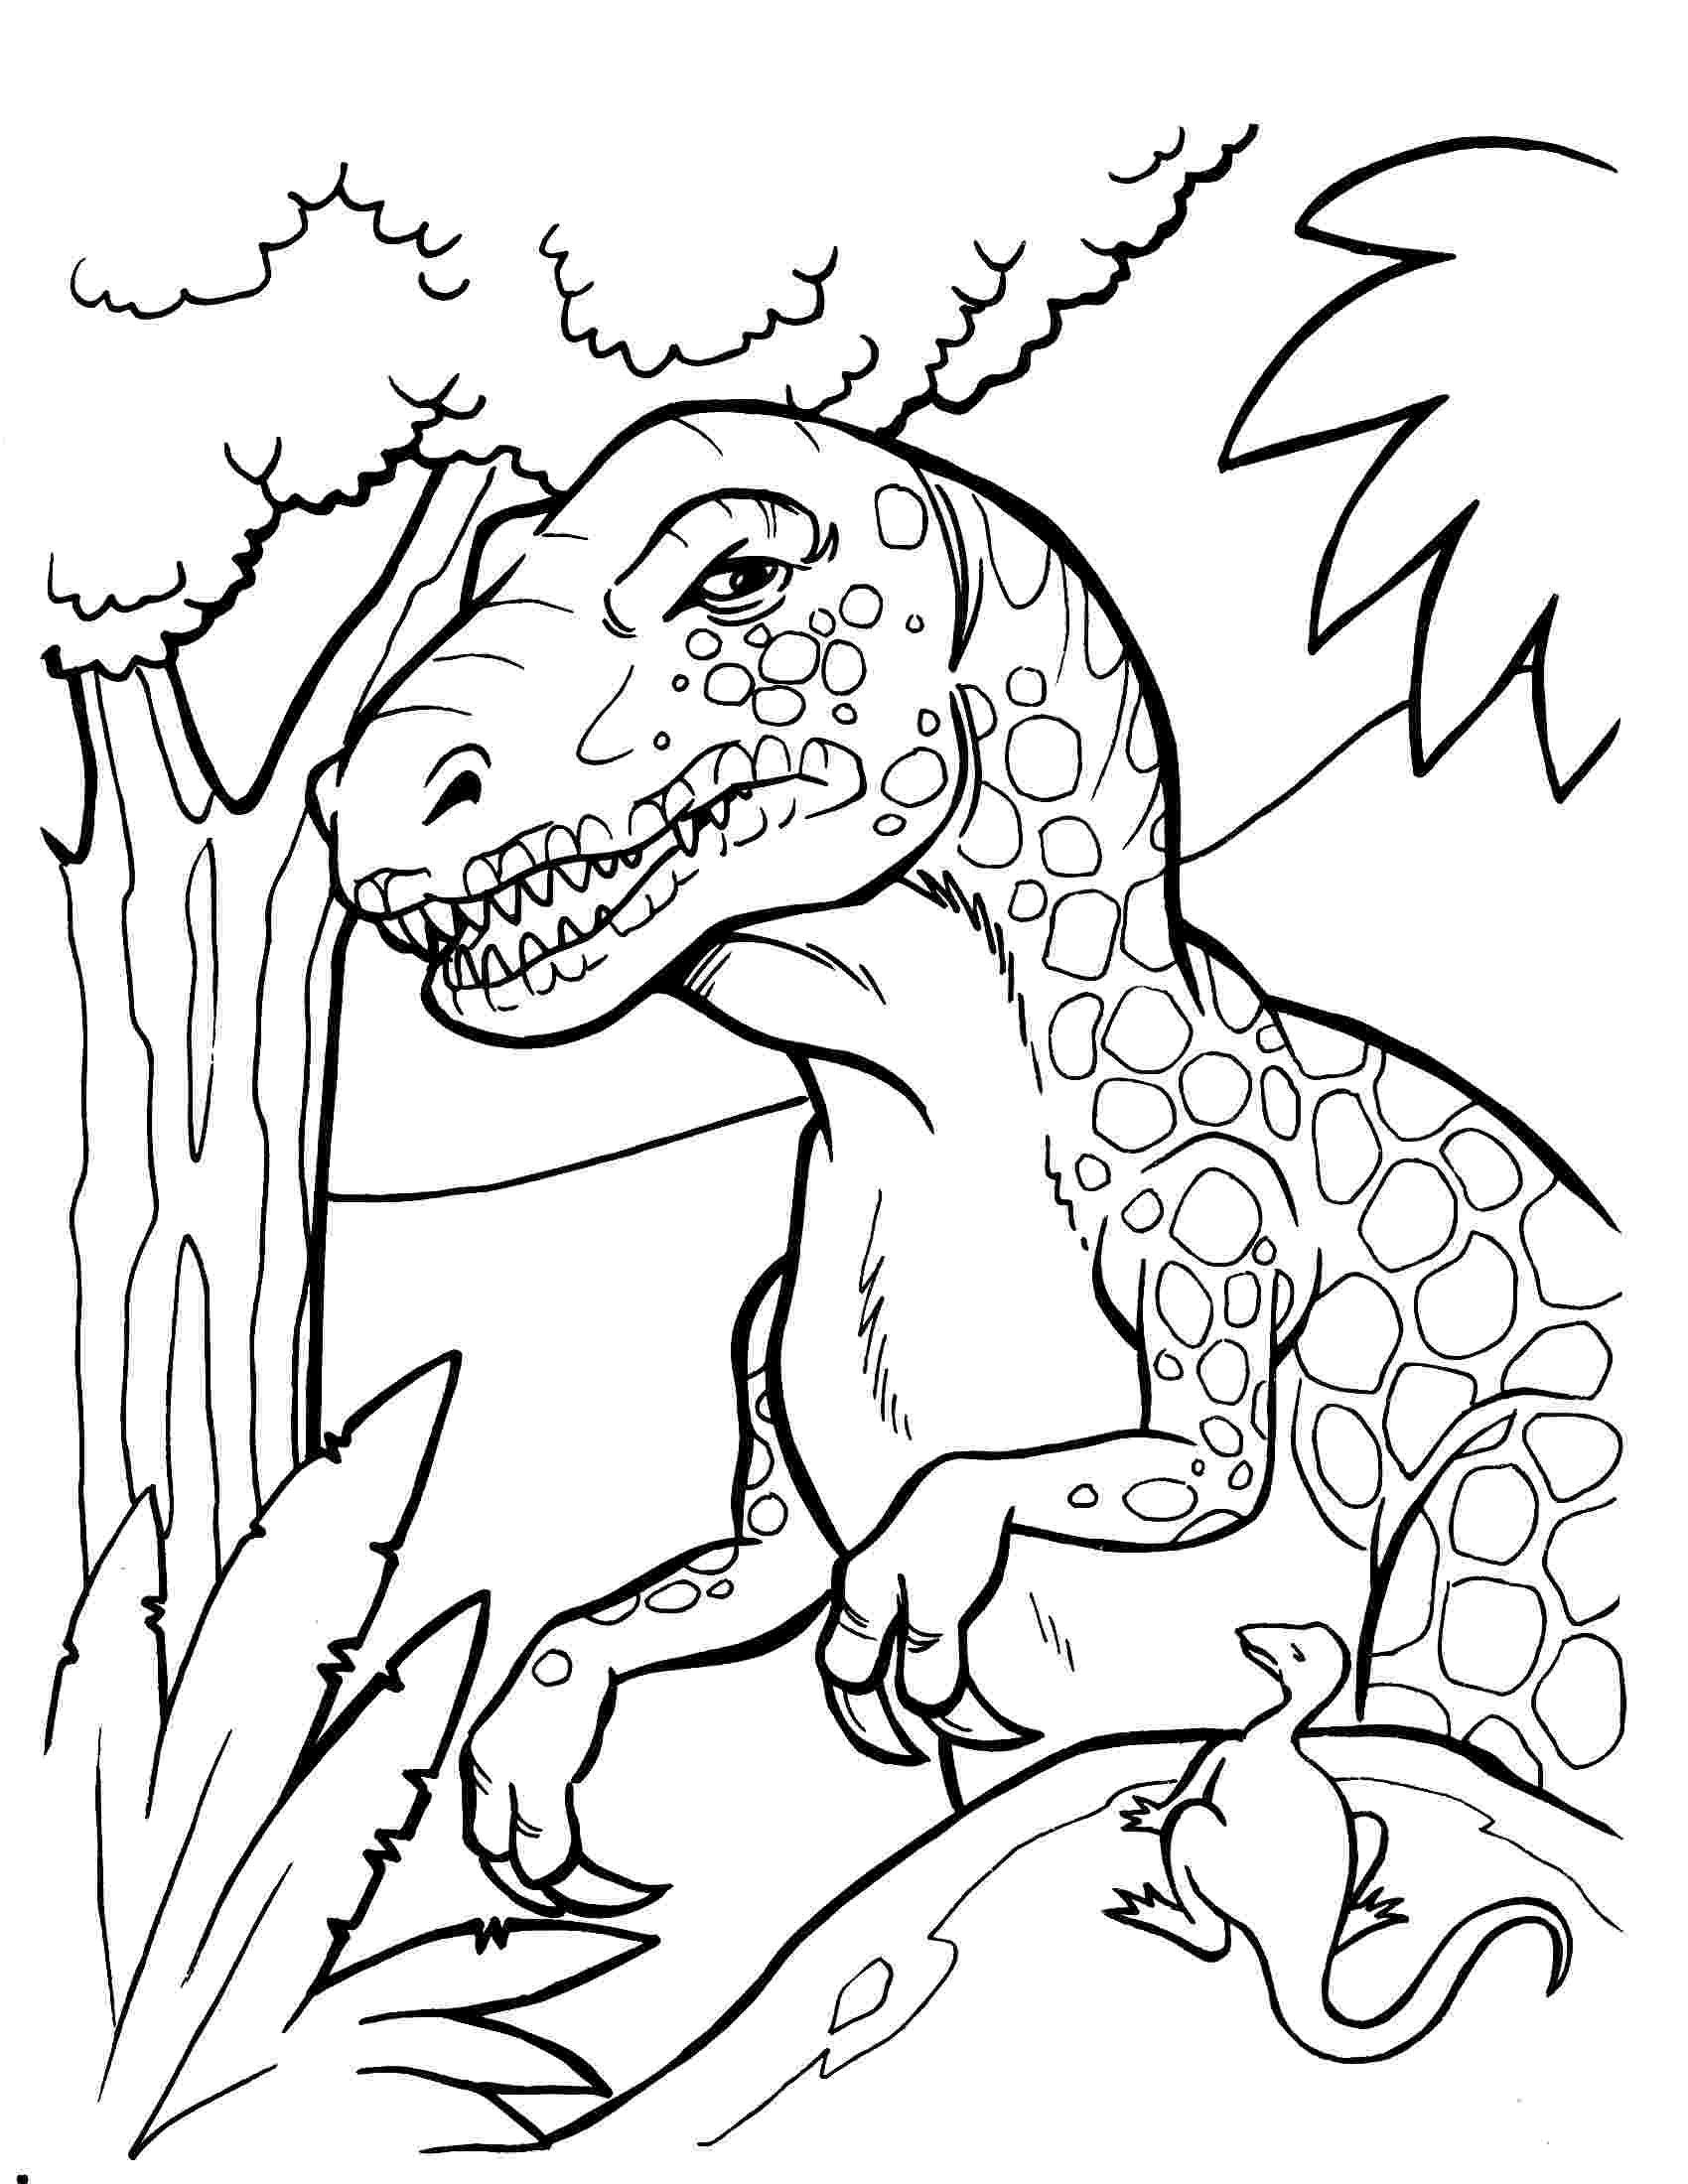 dino colouring pages online free printable dinosaur coloring pages for kids pages online colouring dino